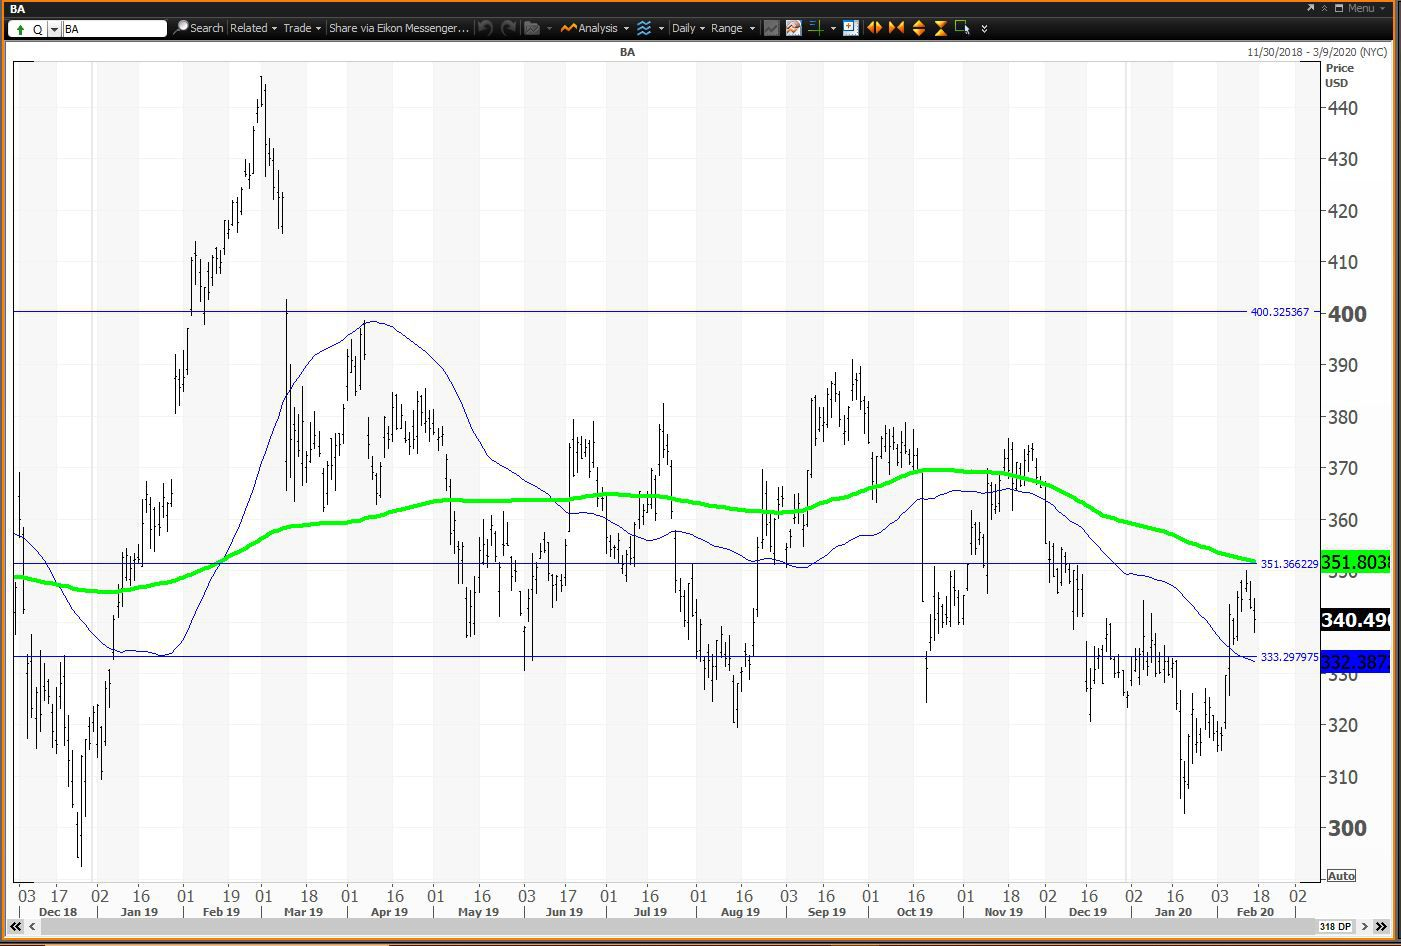 Daily chart showing the share price performance of The Boeing Company (BA)